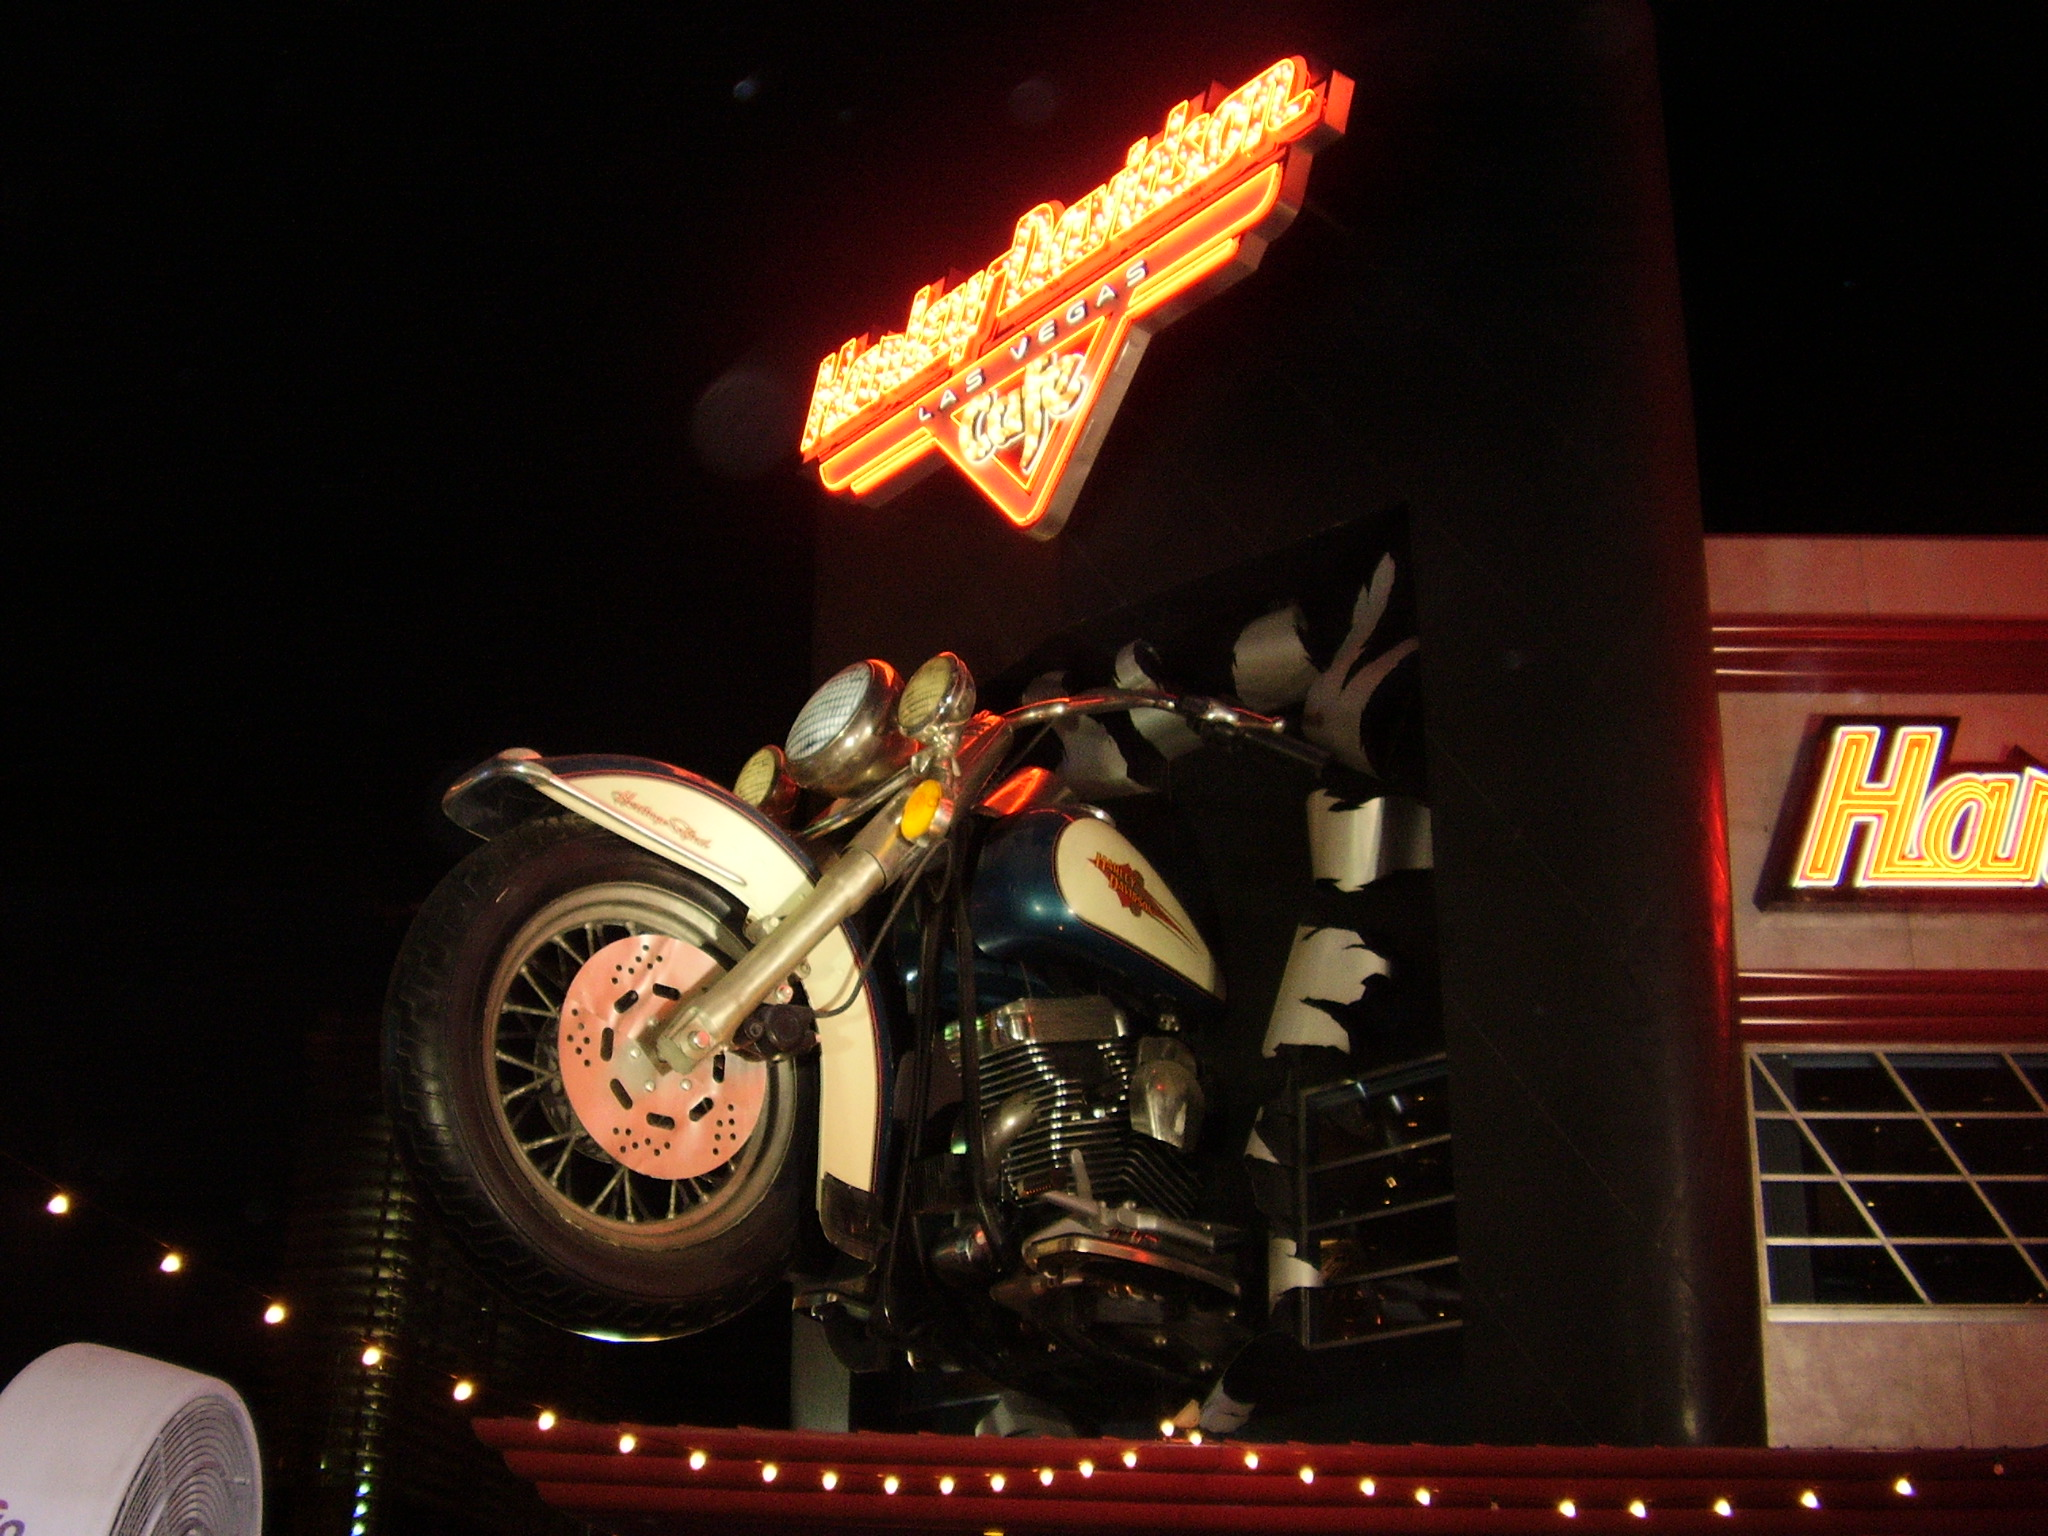 1989 sportster 1200 wiring diagram 1999 mustang gt radio harley davidson wikipedia cafe theme restaurant located on the las vegas strip